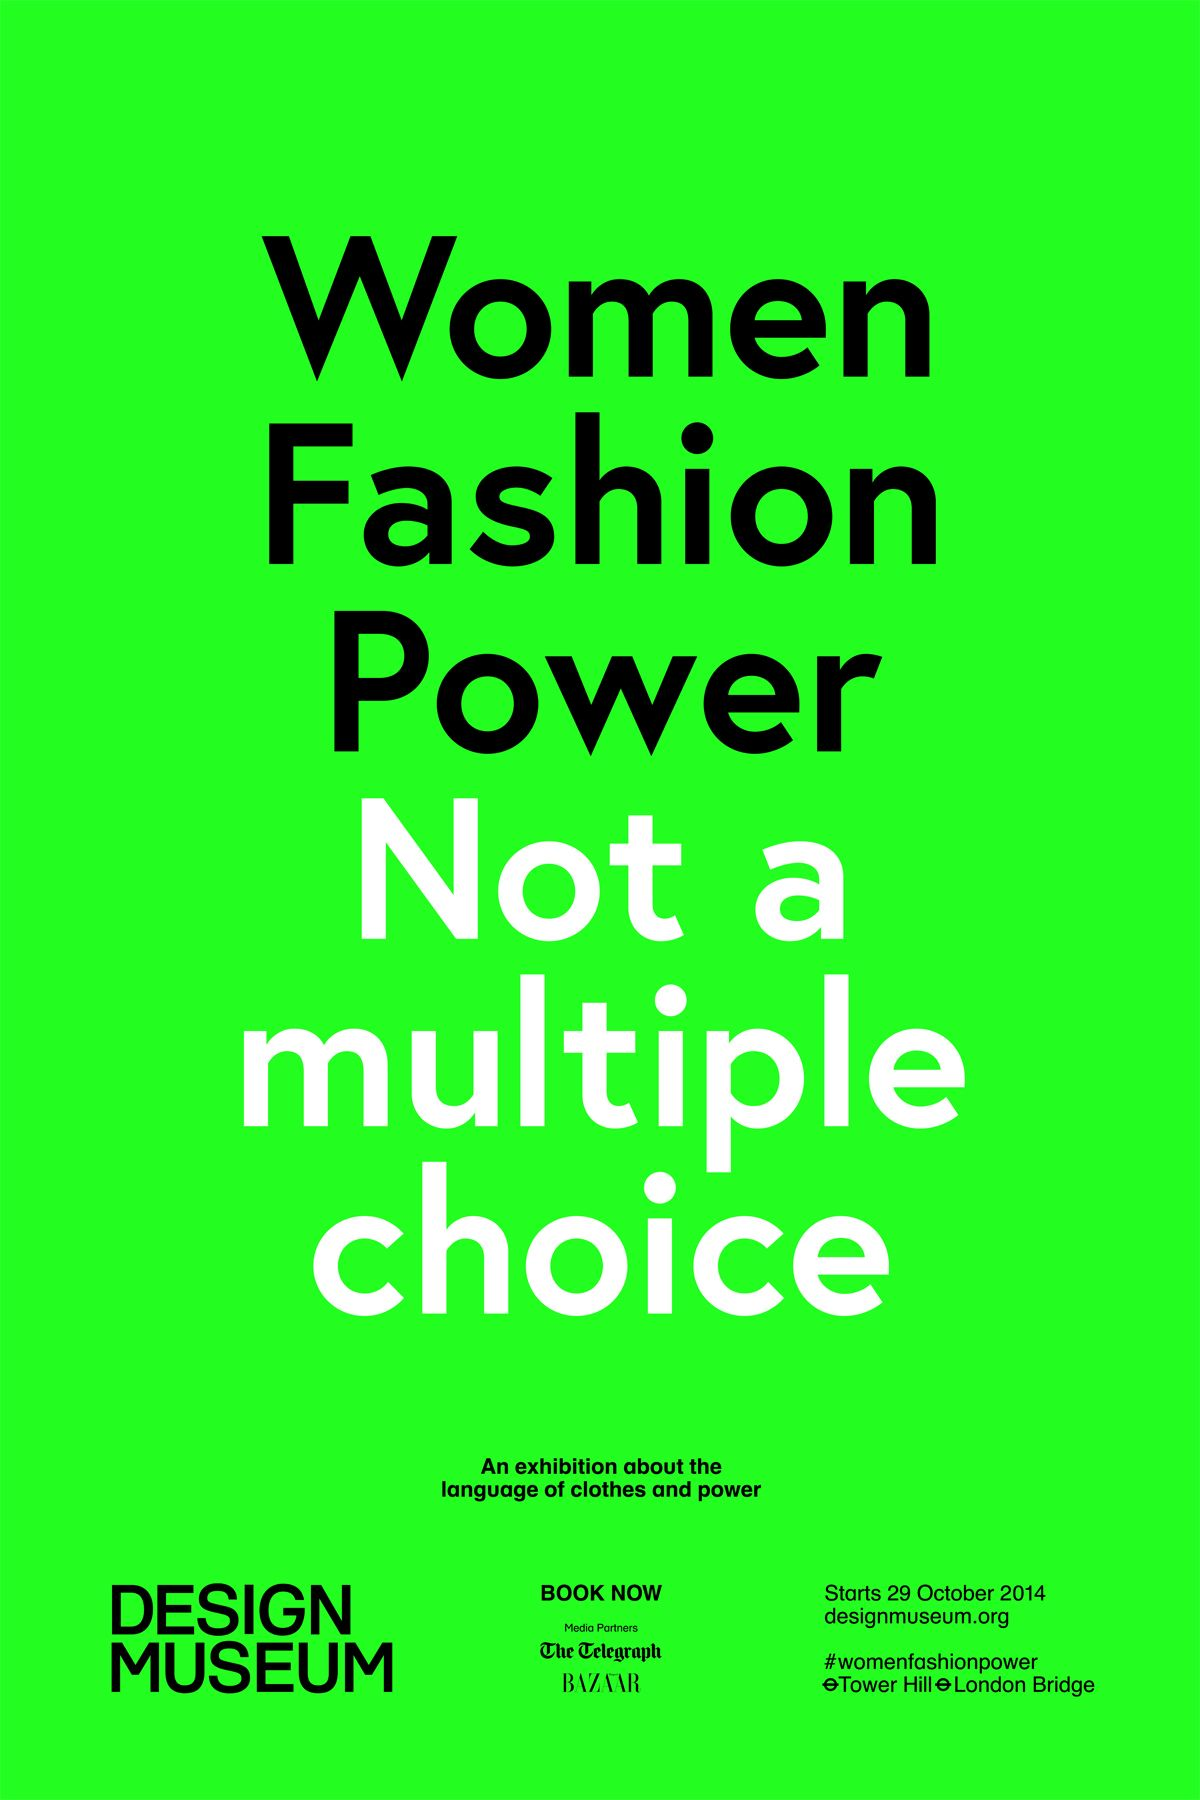 Poster vitra design museum - The Beautiful Meme S Neon Posters For Design Museum Show Women Fashion Power Make Great Use Of